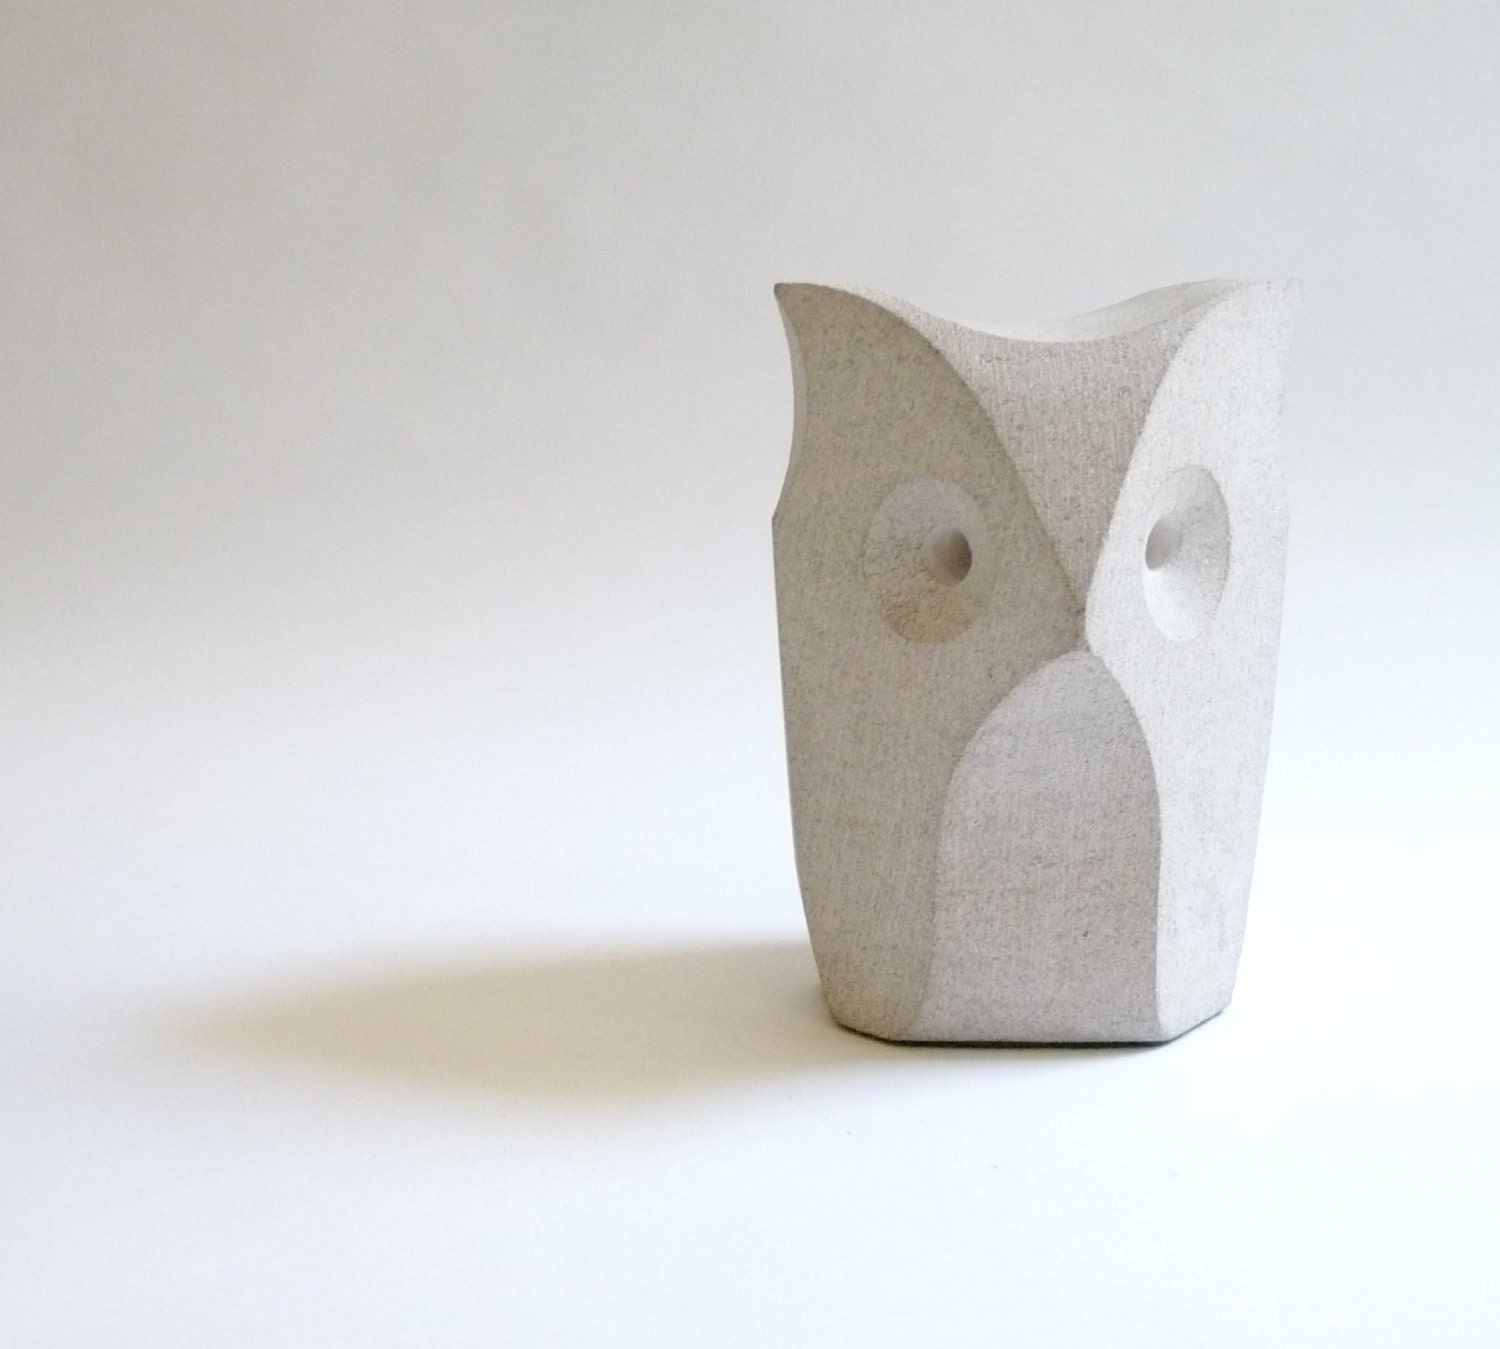 Modernist Stone Owl Sculpture - mascarajones